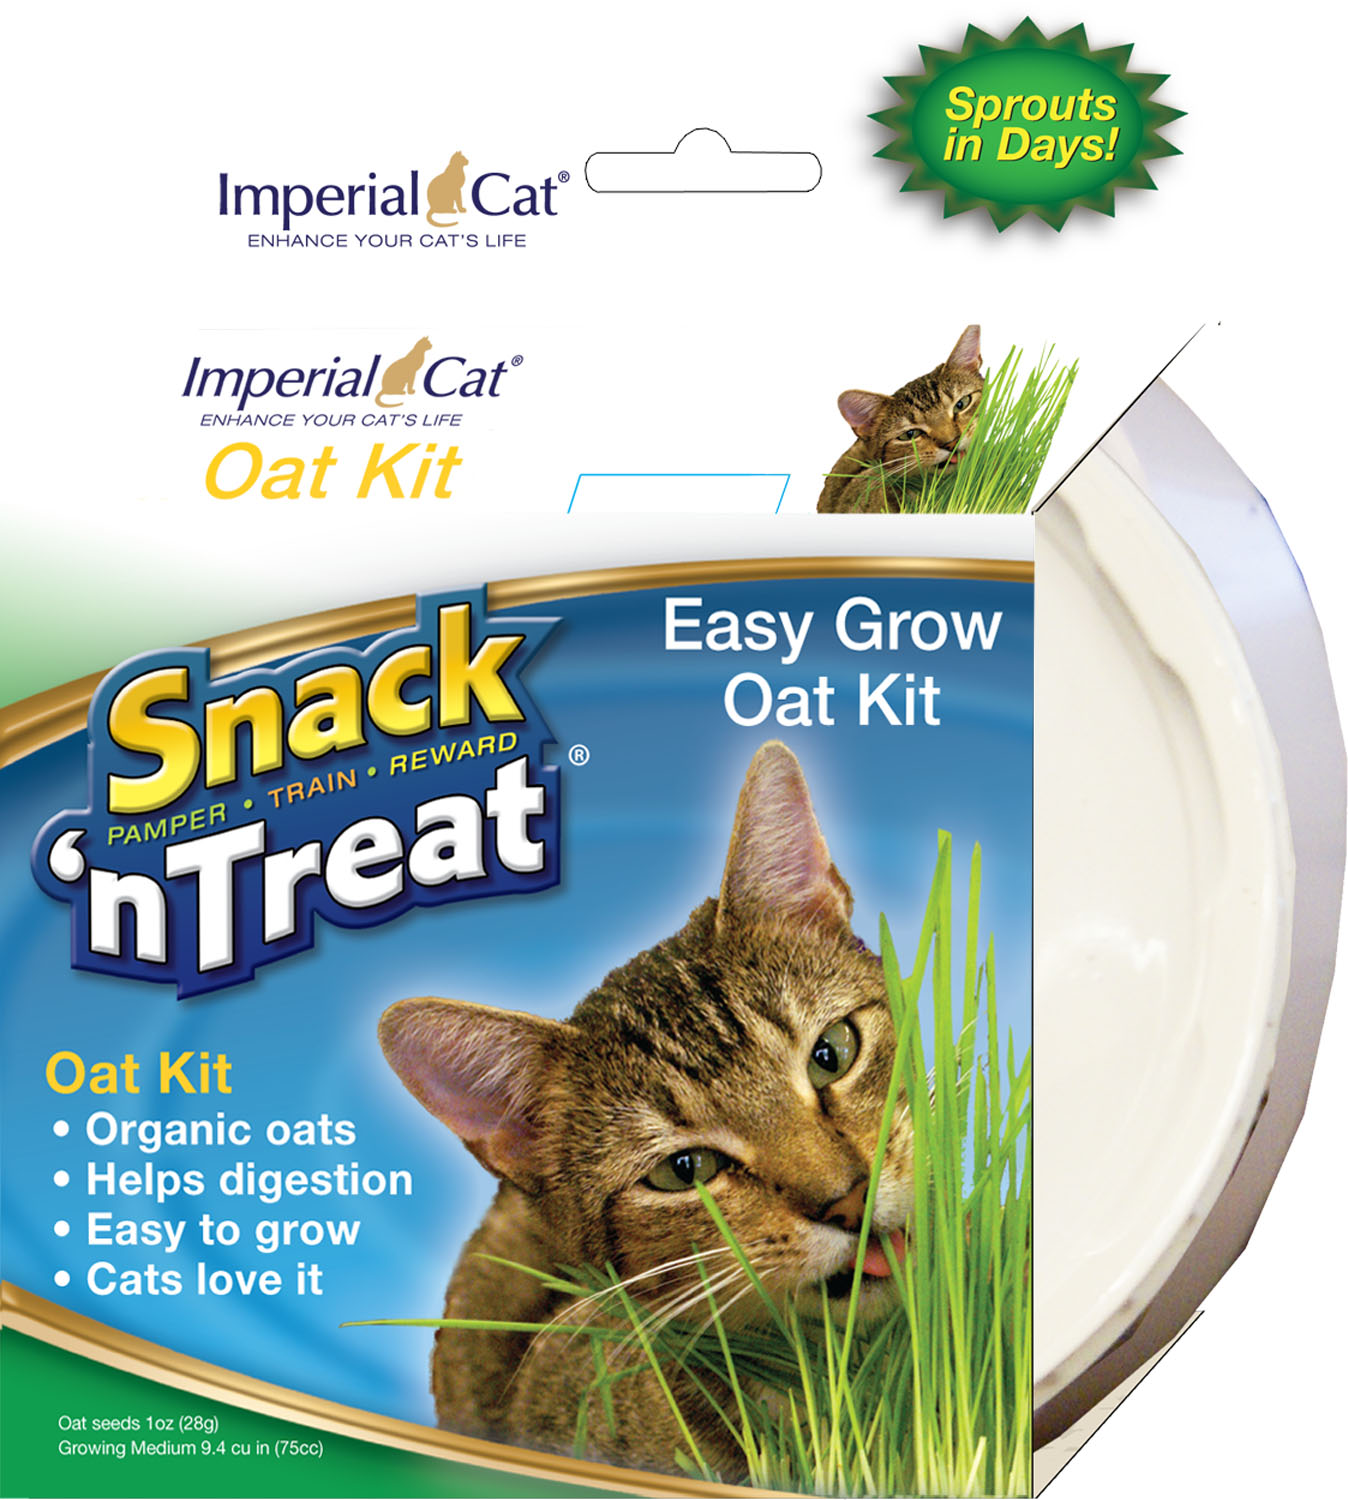 Imperial Cat Organic Oat Glass